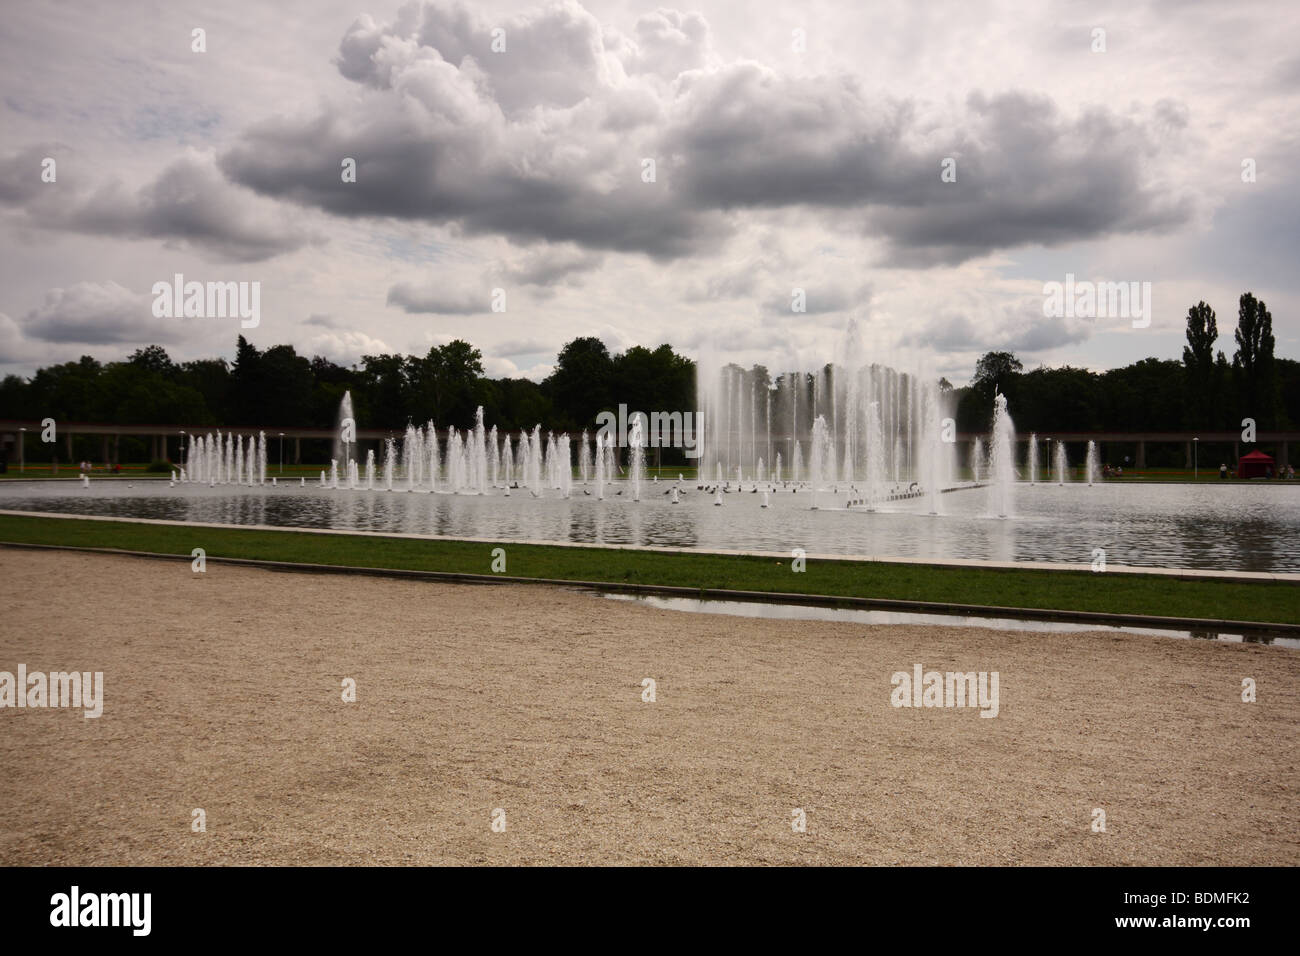 Multimedia fountain in Wroclaw, Poland - Stock Image